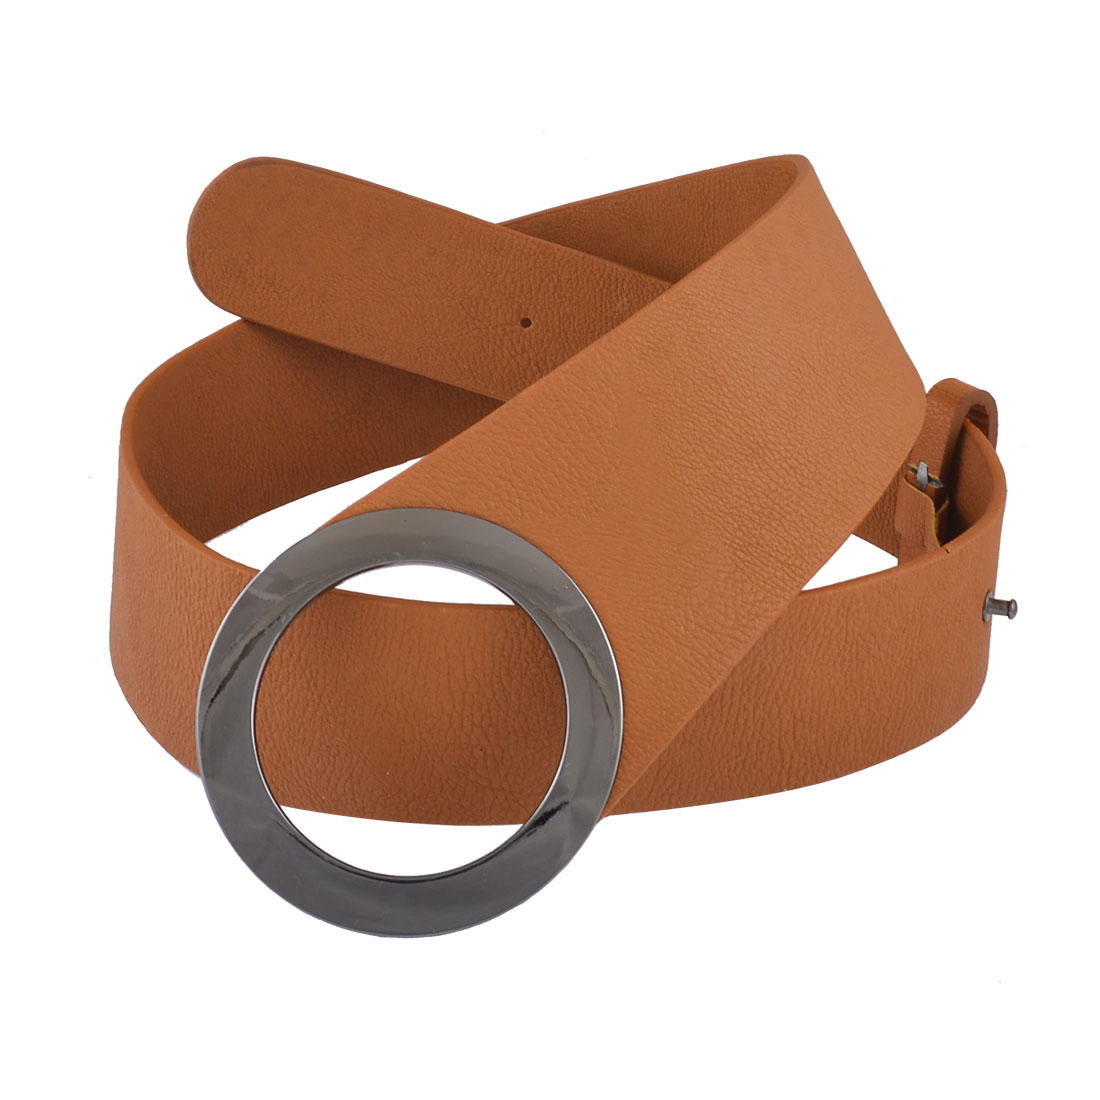 Metal Circle Press Buckle Faux Leather Wide Waist Belt Band Brown for Man